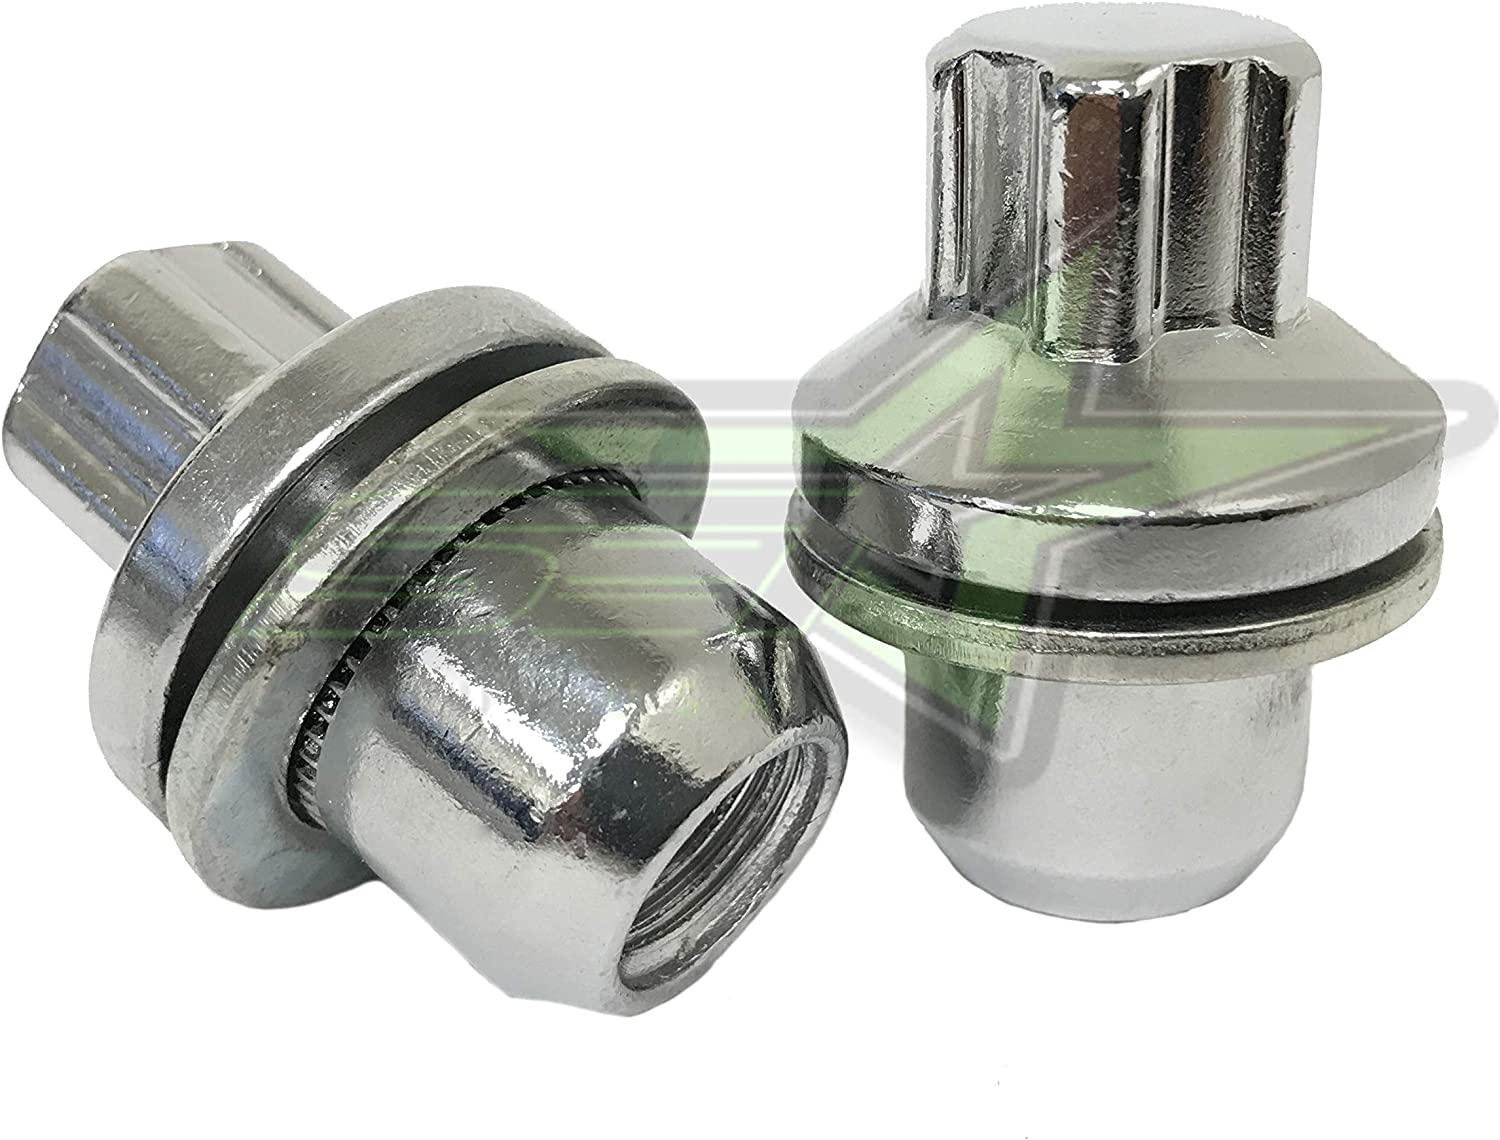 SET Group USA Mag Wheel Locks Works with Land Rover LR2 LR4 Evoque Discovery Factory OEM Style 14x1.5